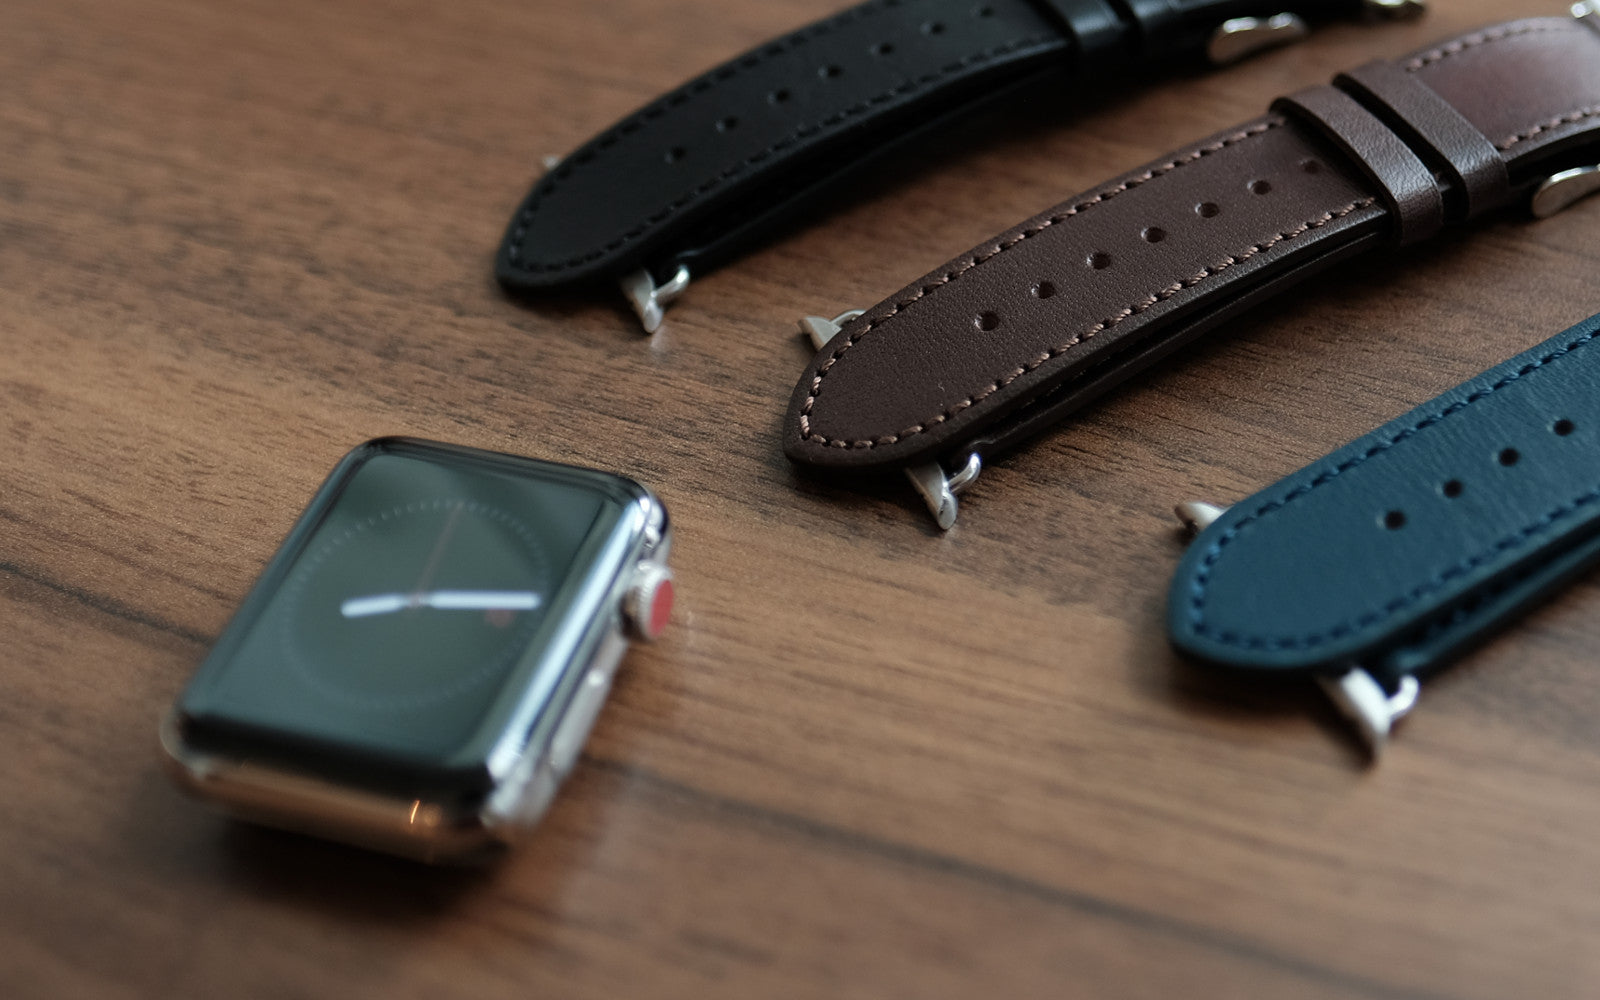 Pin and Buckle Apple Watch Bands - Luxurious Leather Apple Watch Straps - FAQs